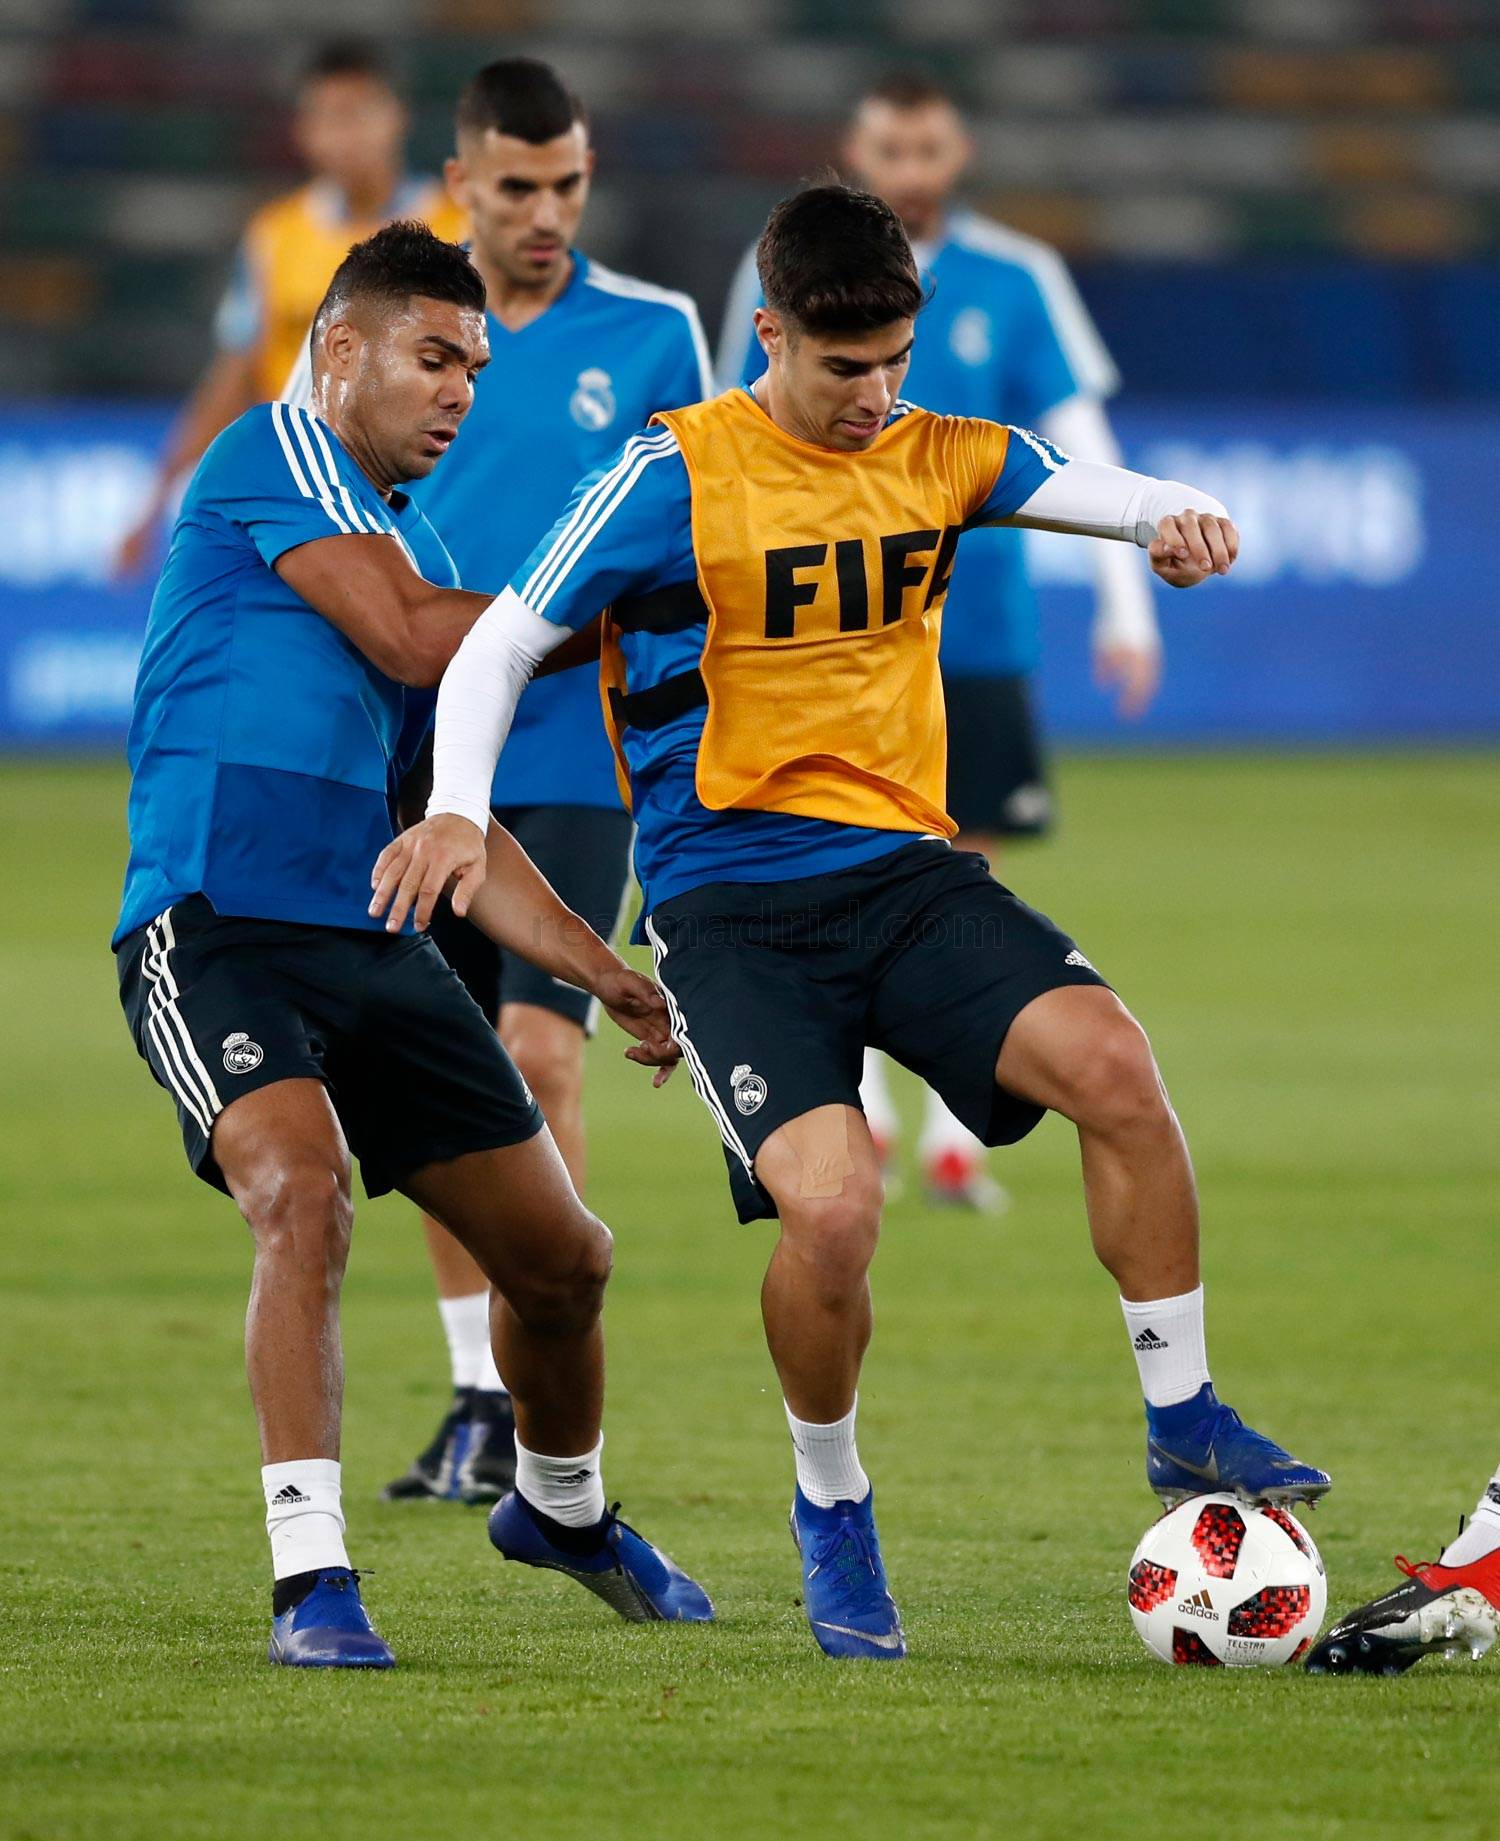 Real Madrid - Entrenamiento del Real Madrid en Abu Dabi - 18-12-2018